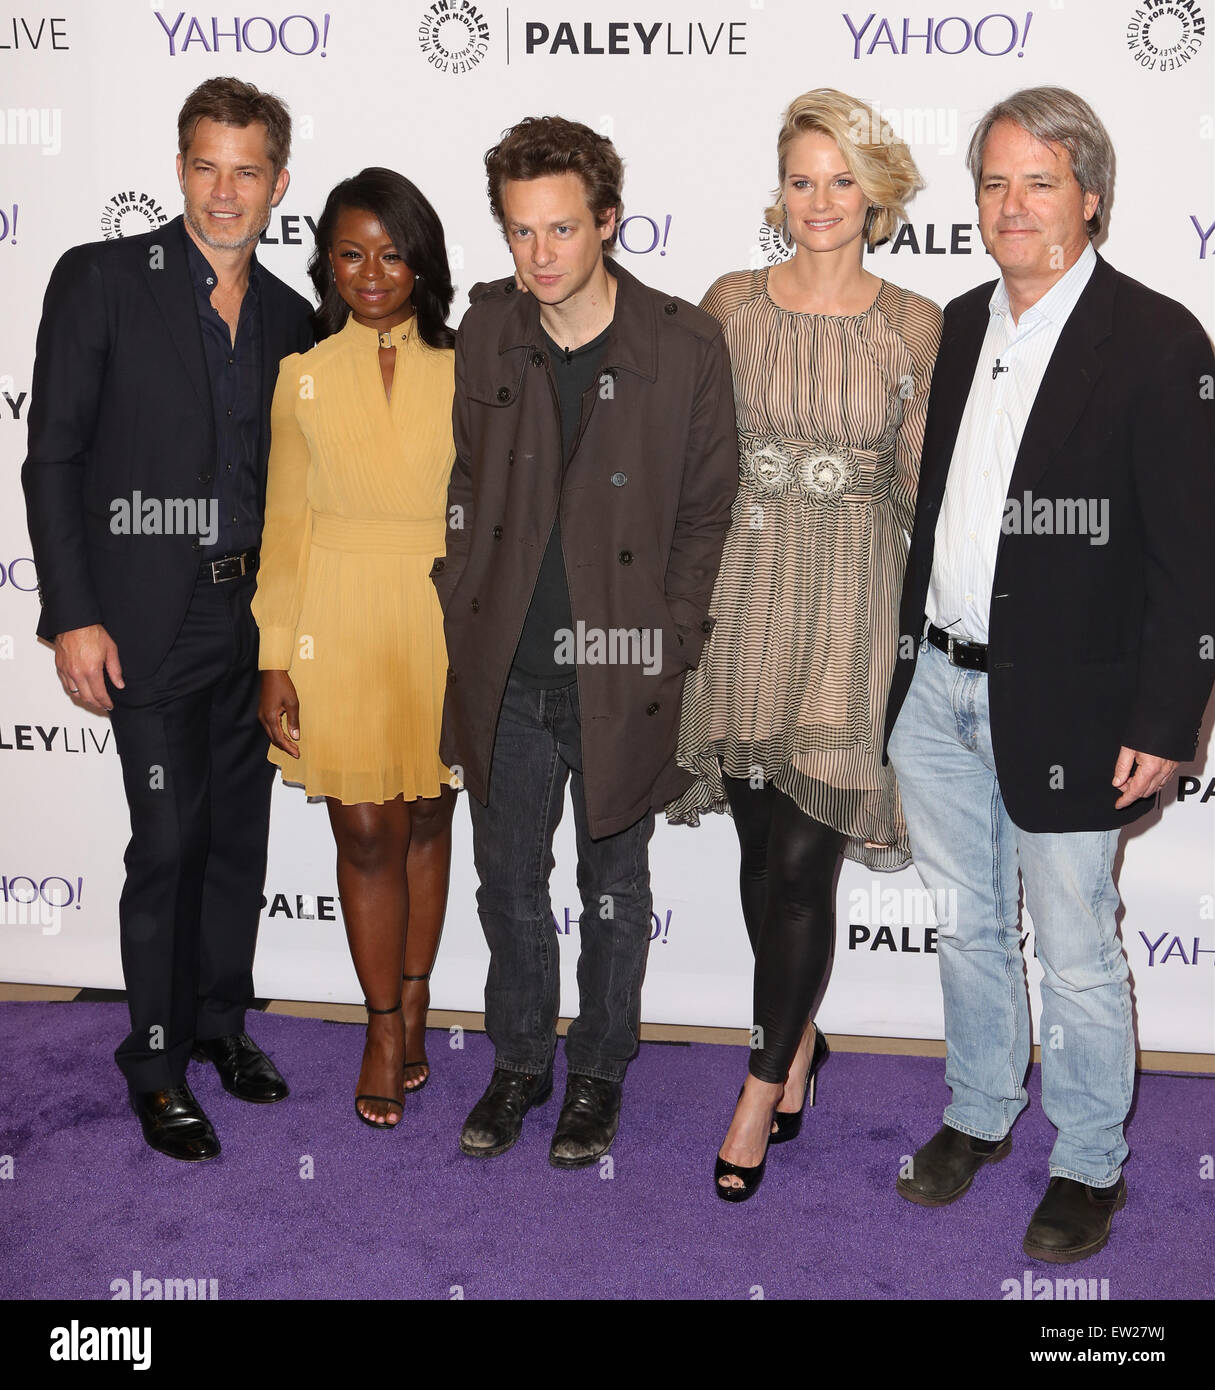 Celebrities Attend Paley Center In Beverly Hills Evening With Stock Photo Alamy From spelman college and an m.f.a. https www alamy com stock photo celebrities attend paley center in beverly hills evening with justified 84257982 html